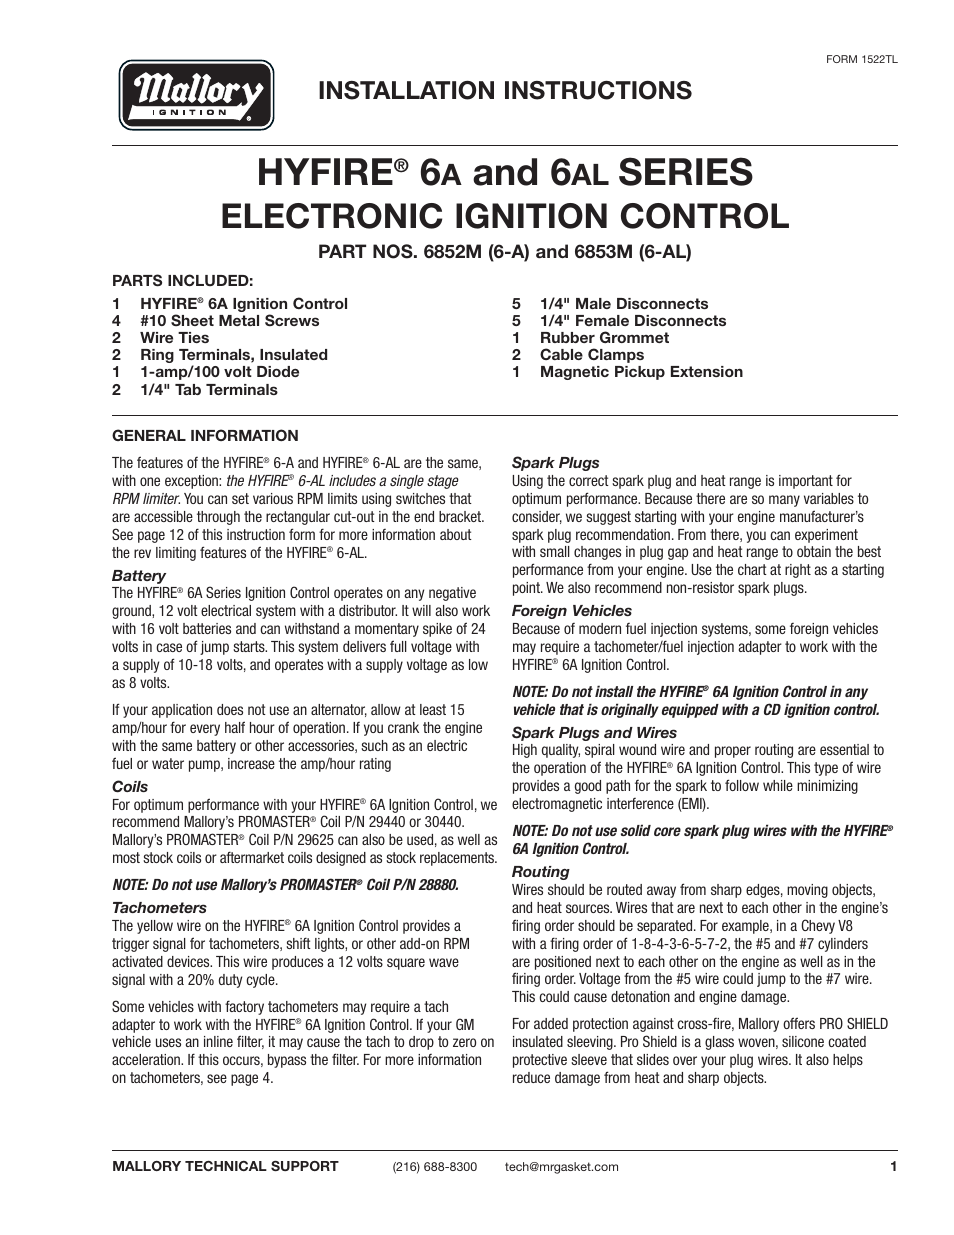 Mallory Ignition Hyfire 6a And 6al Series Electronic High Fire Wiring Diagram With Rev Limiter Controls 6852m 6853m User Manual 36 Pages Also For